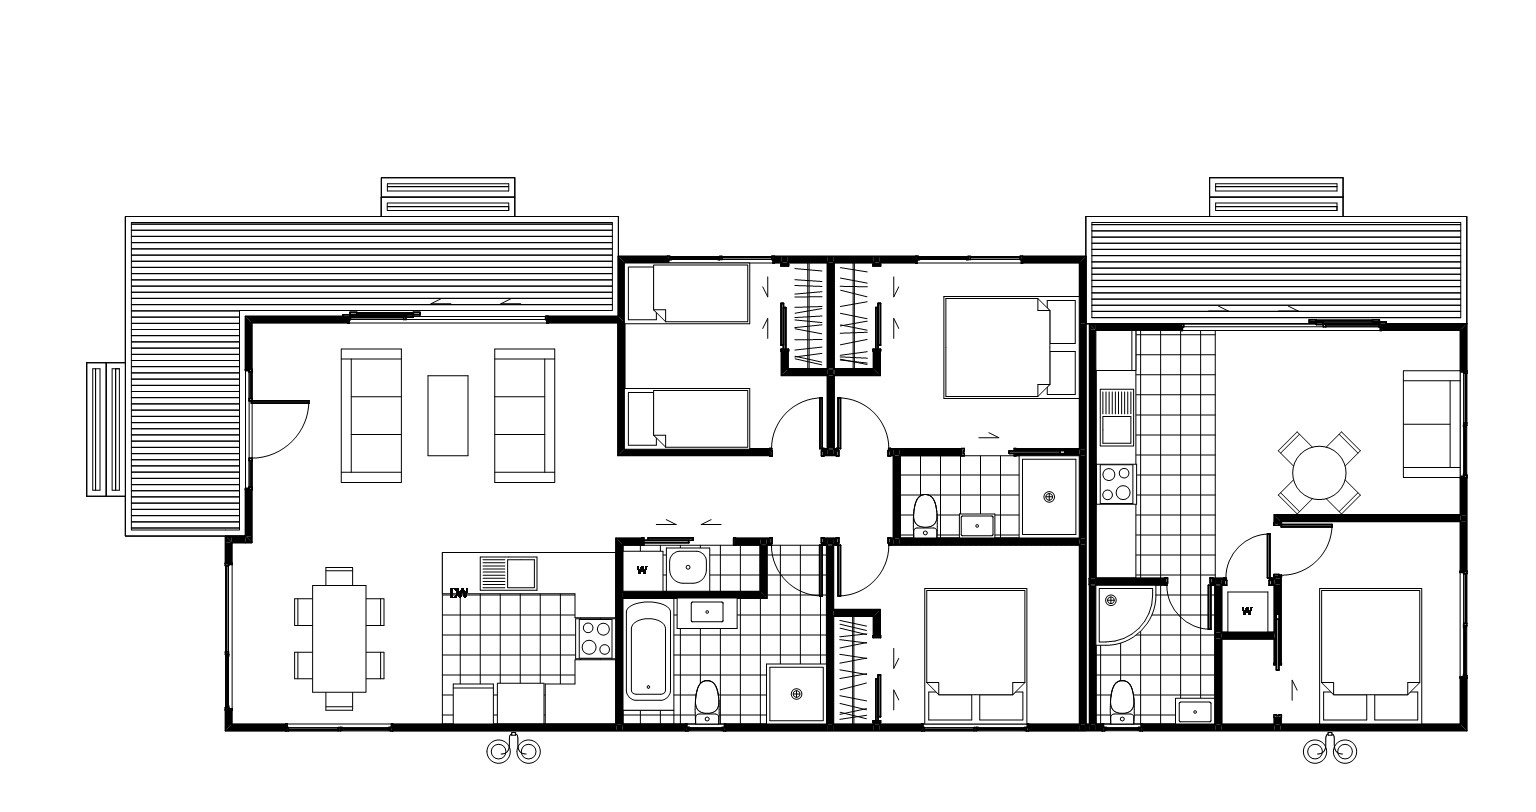 Kingston - Floor Plan.jpg